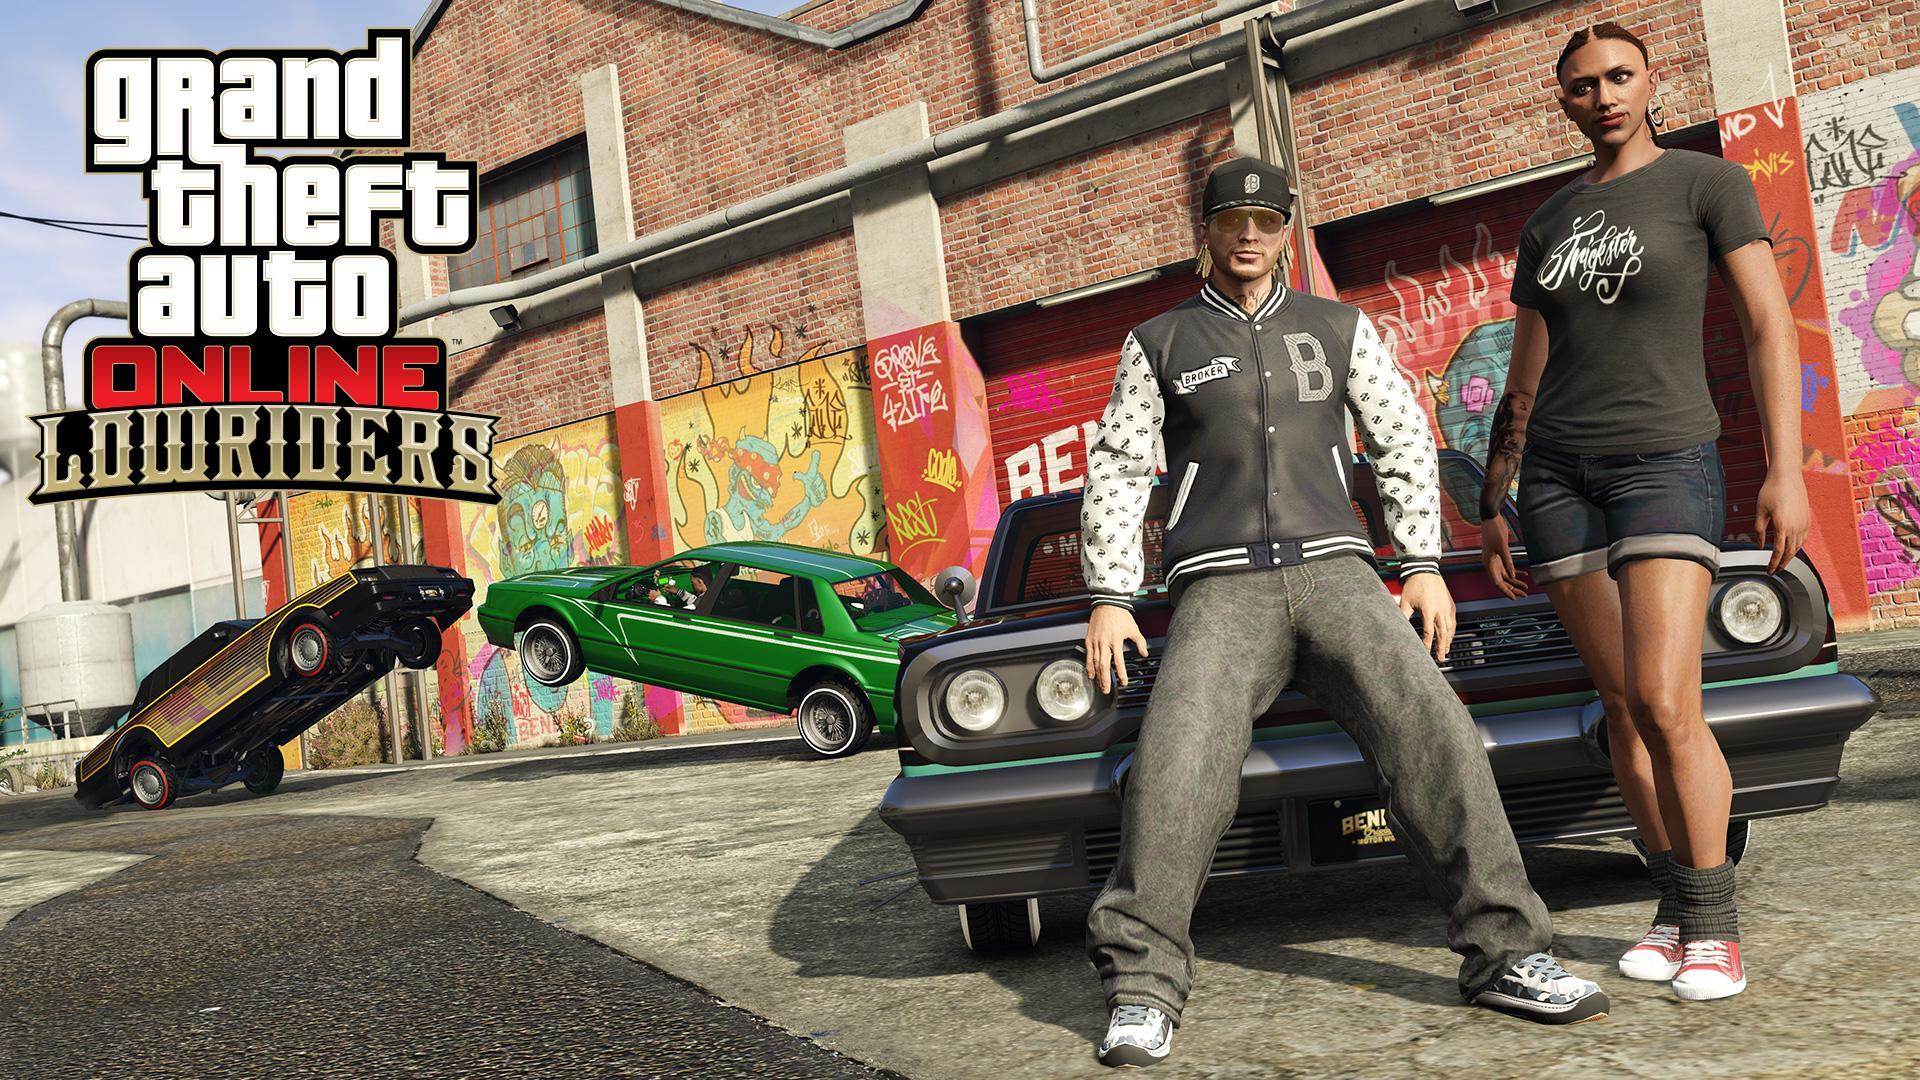 GTA Online: Lowriders Update Now Available